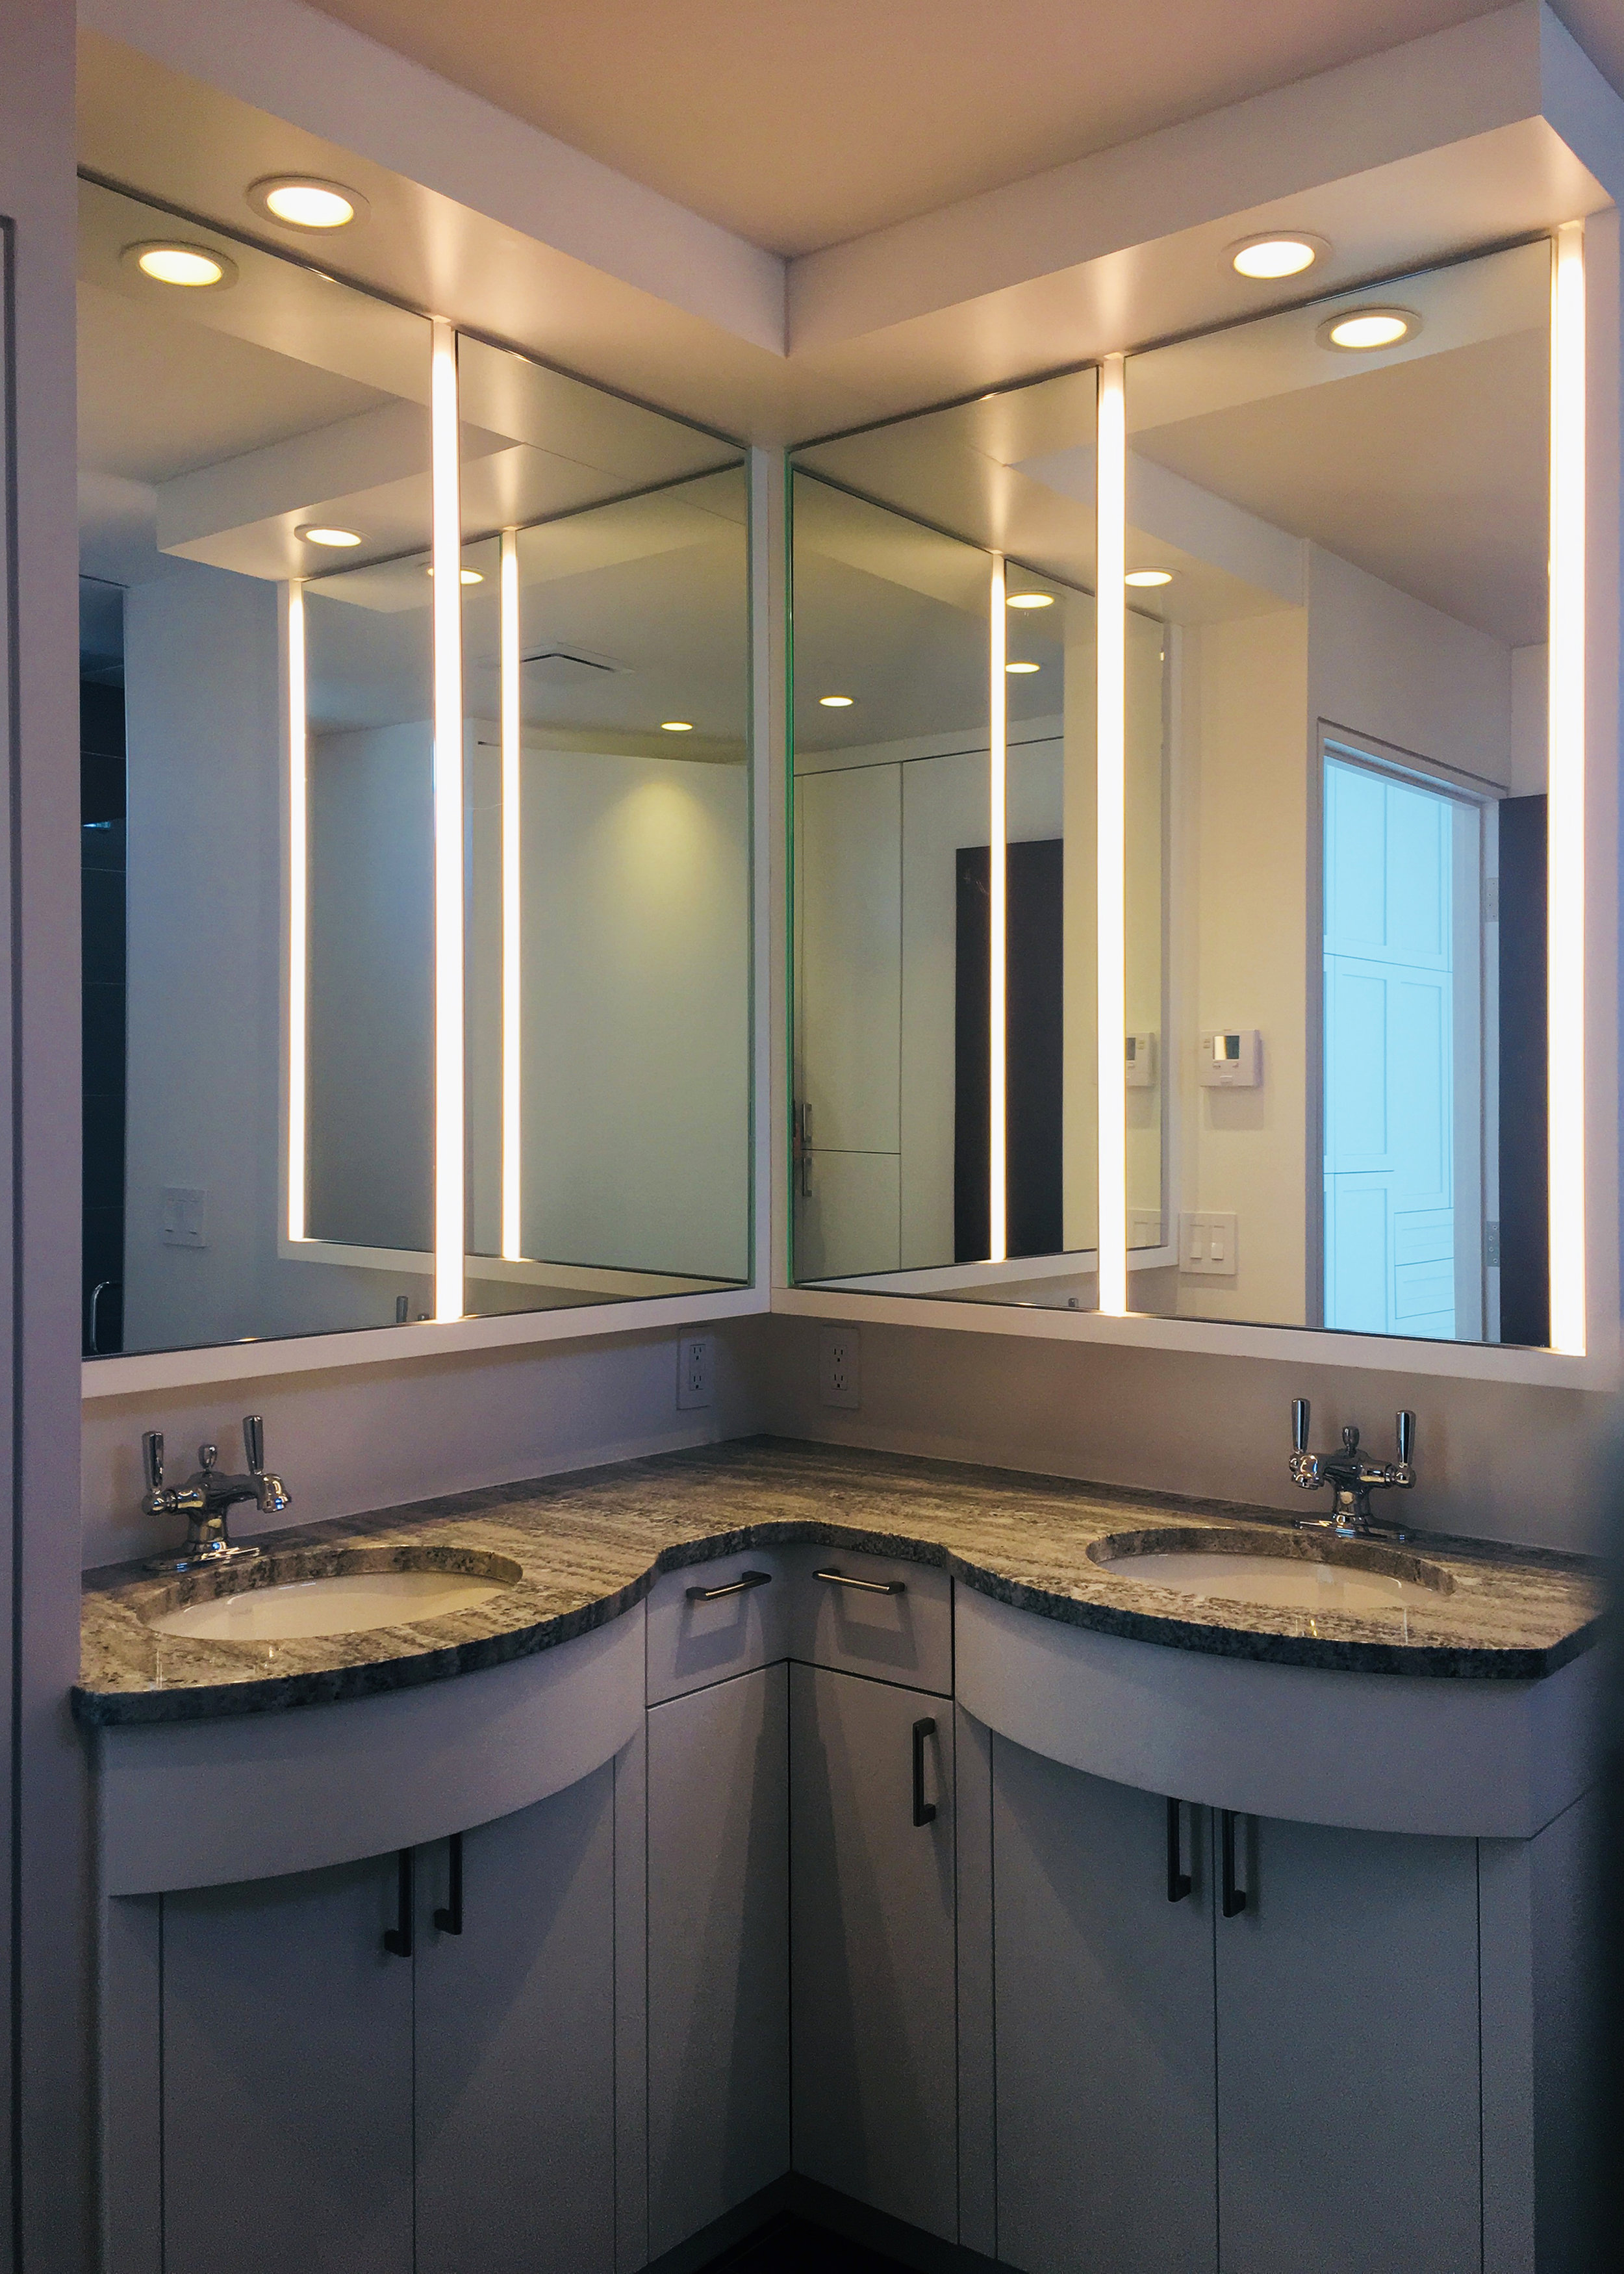 1203 - BATHROOM.jpg